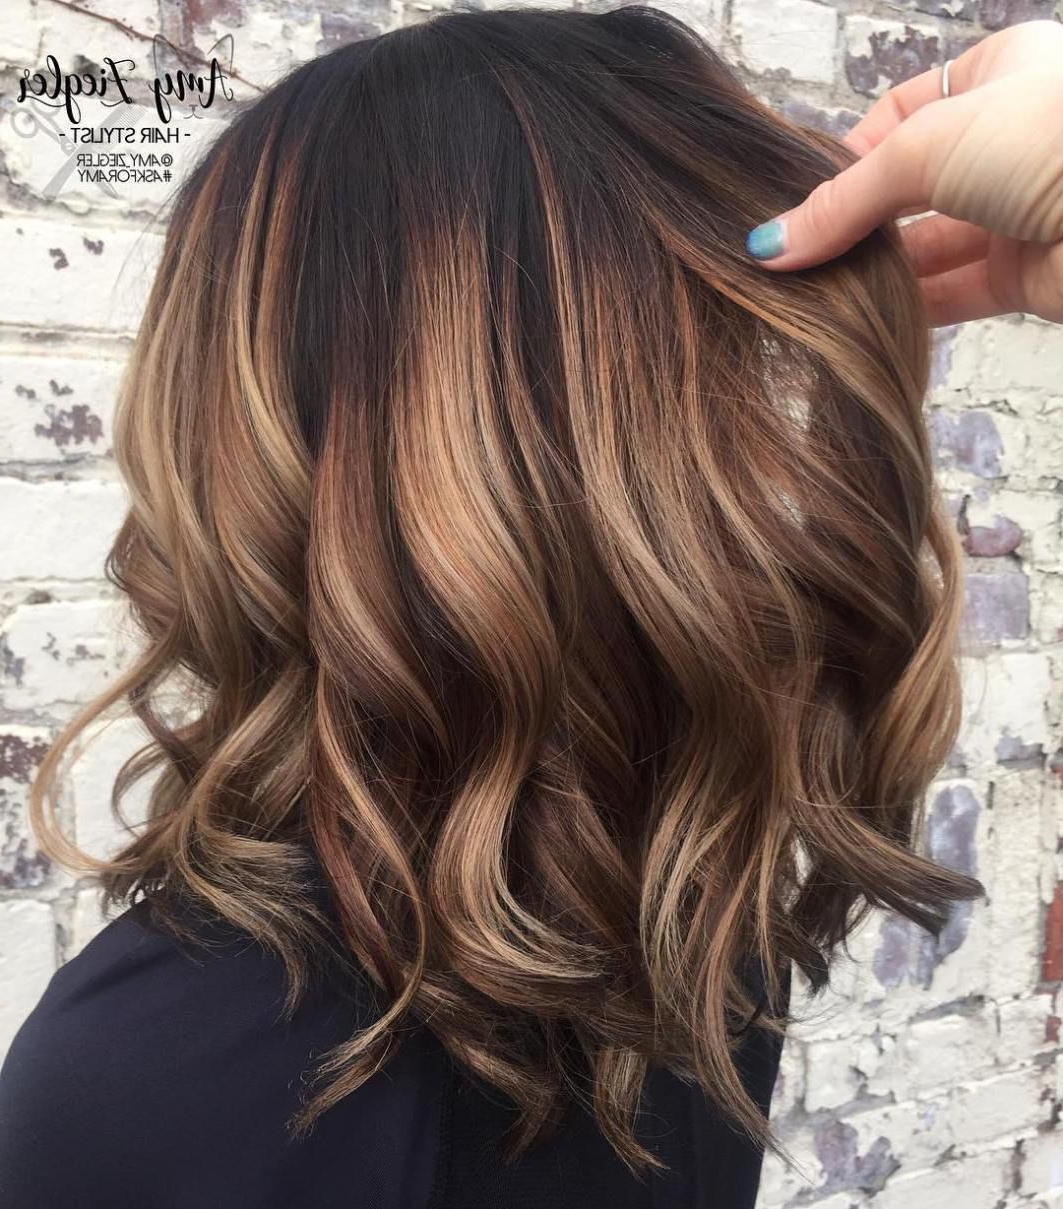 Curly Caramel Balayage Bob | Curly Hair In 2018 | Pinterest | Hair Inside Soft Brown And Caramel Wavy Bob Hairstyles (View 2 of 20)